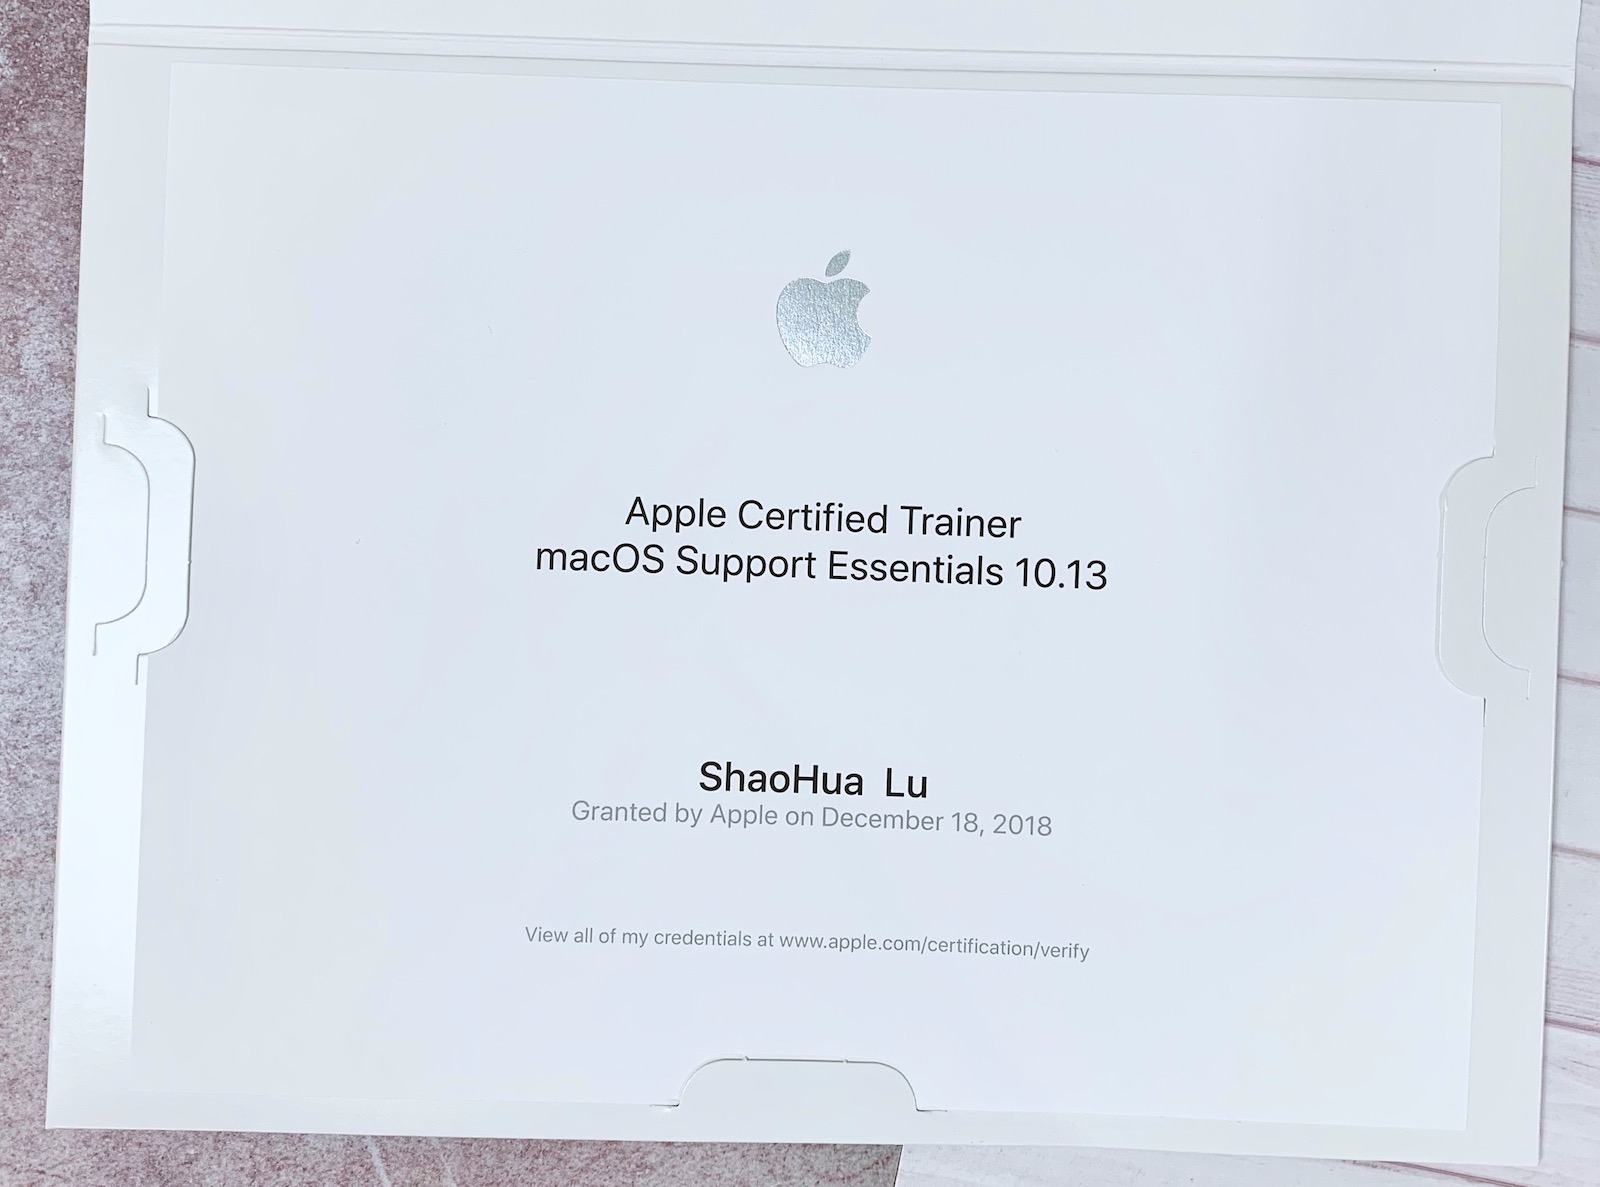 Apple Certified Trainer